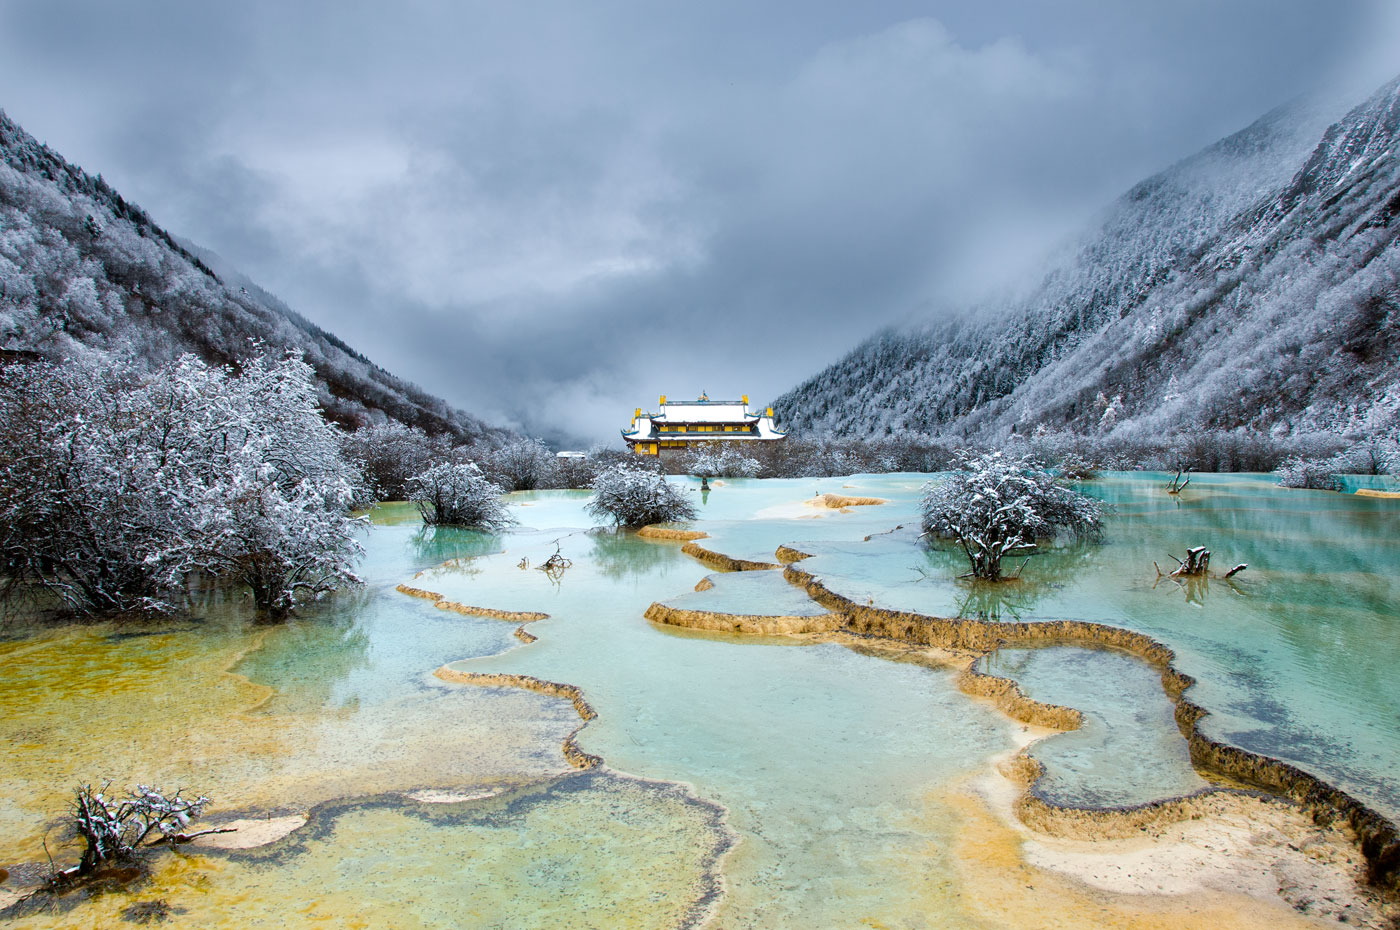 My greatest world destination: Huanglong - Sichuan - China